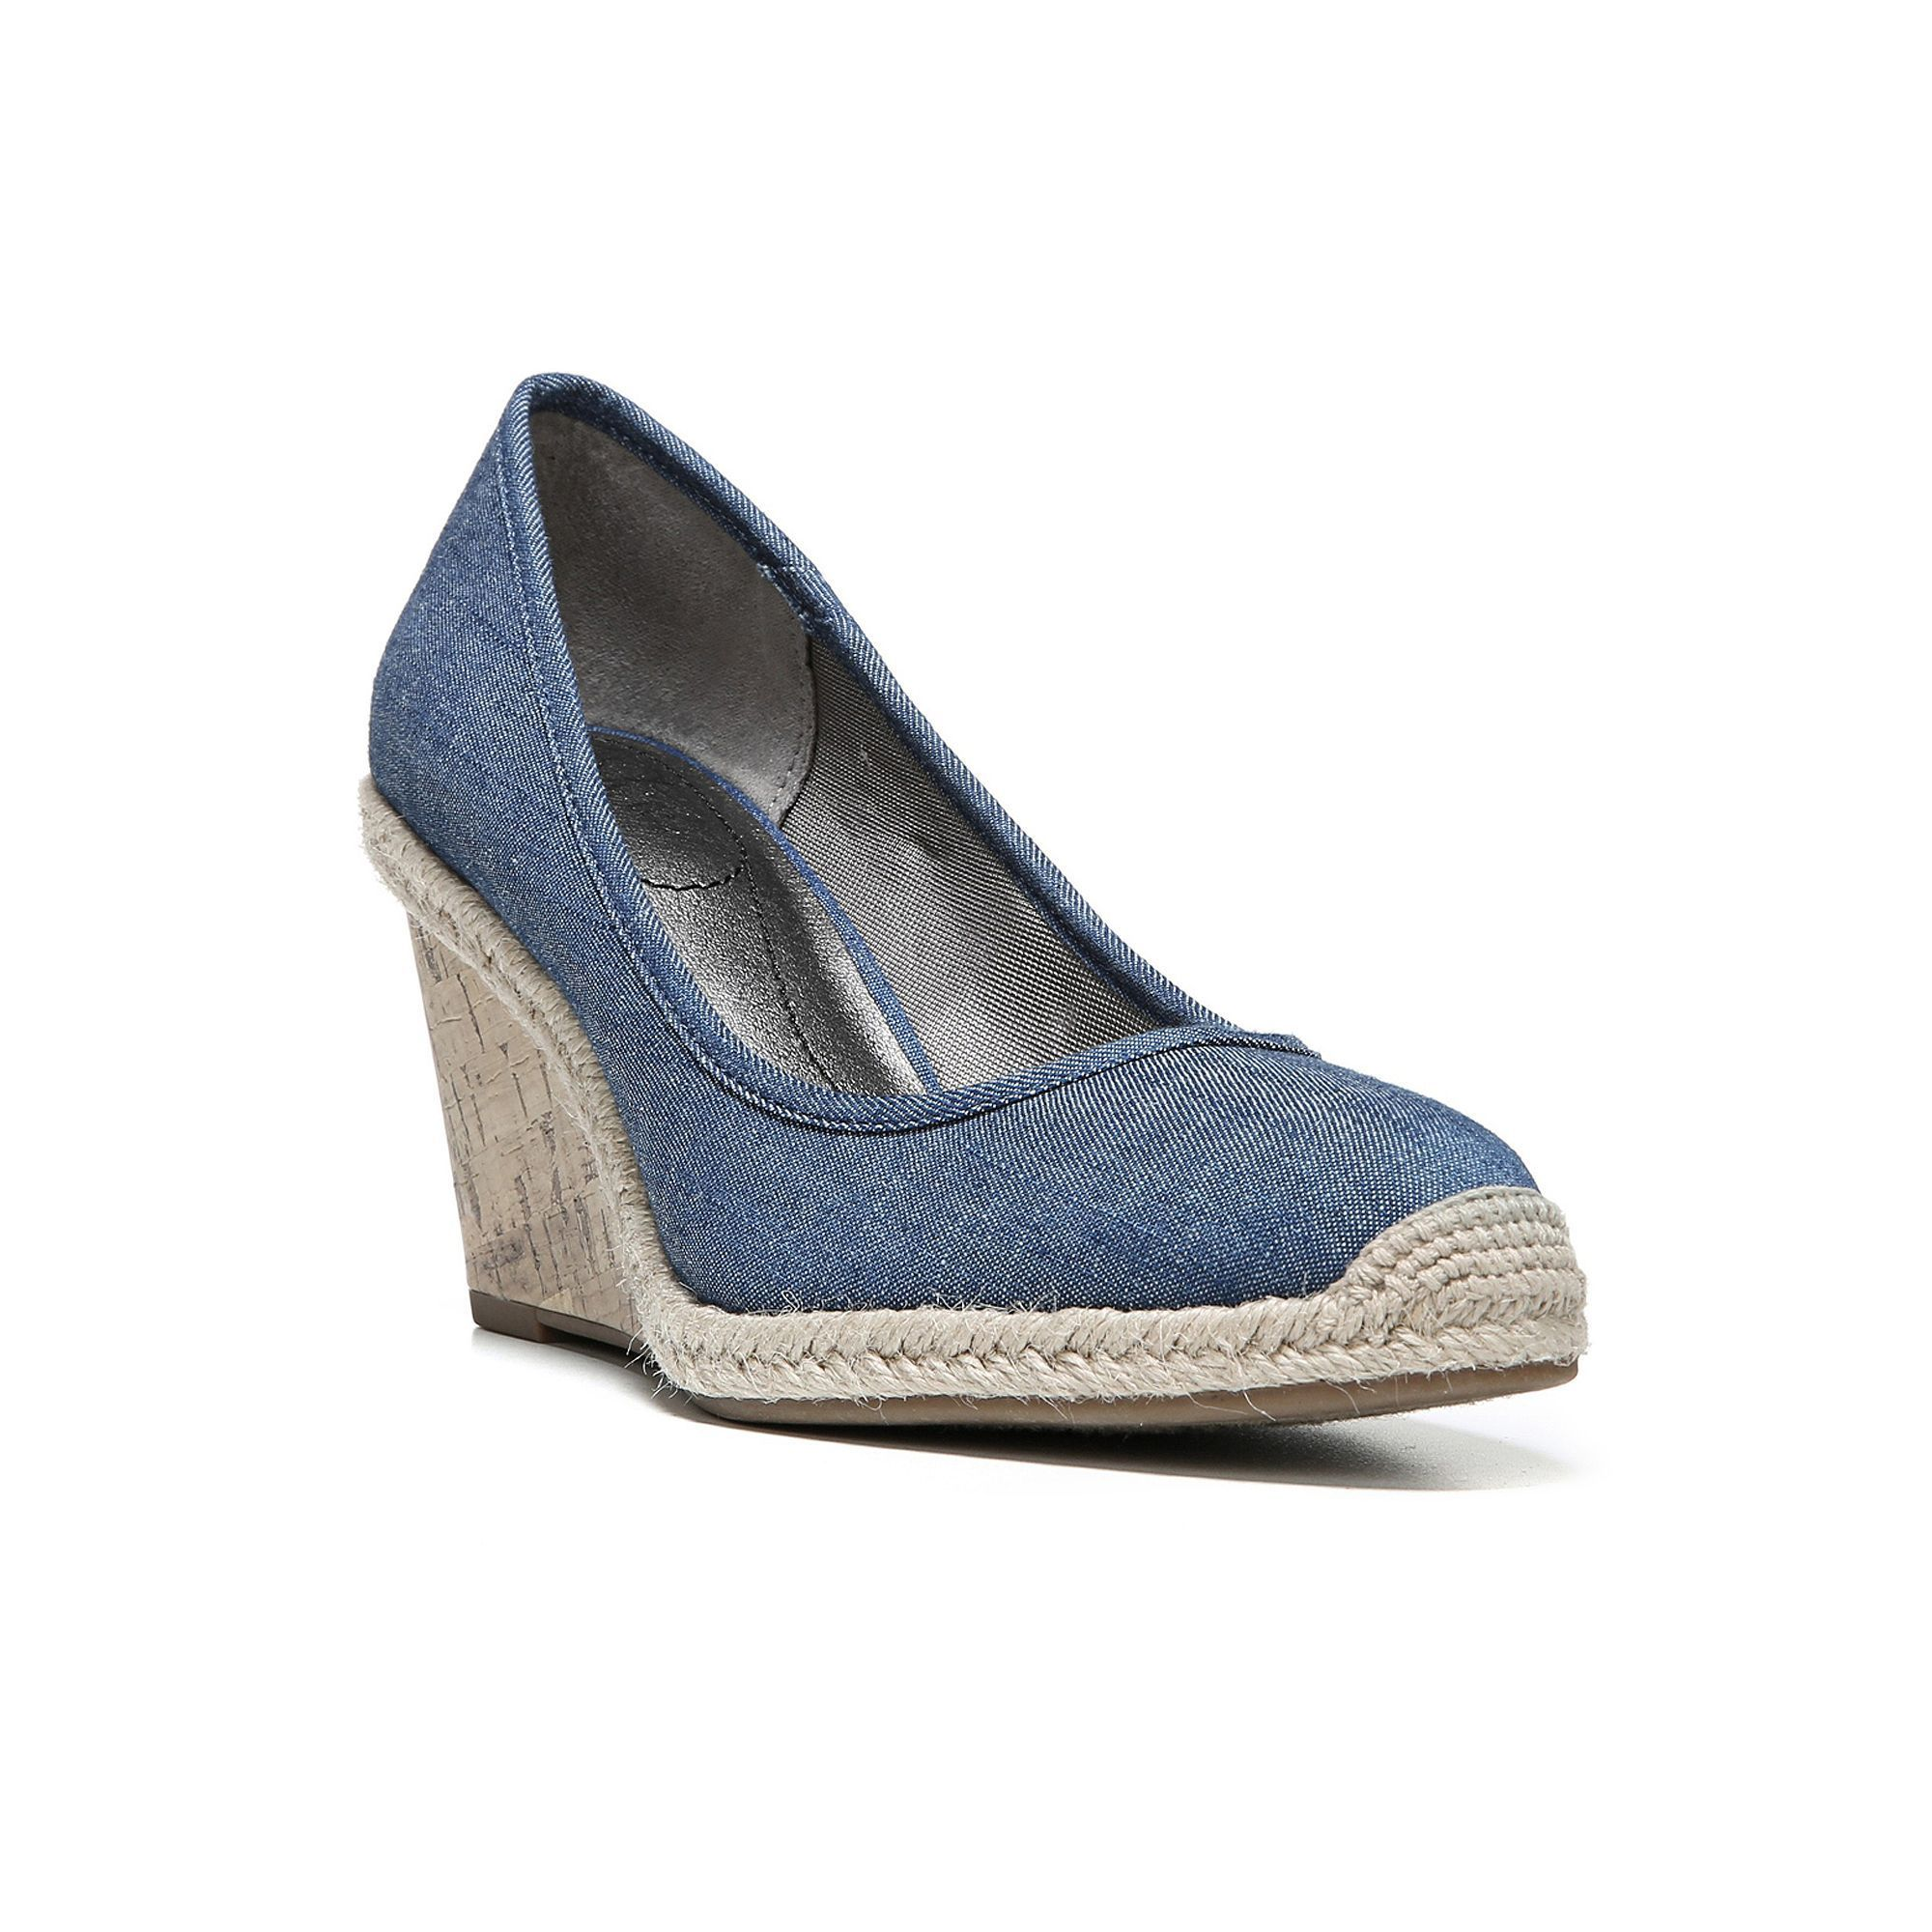 66242eb35660 LifeStride Listed Women s Espadrille Wedges